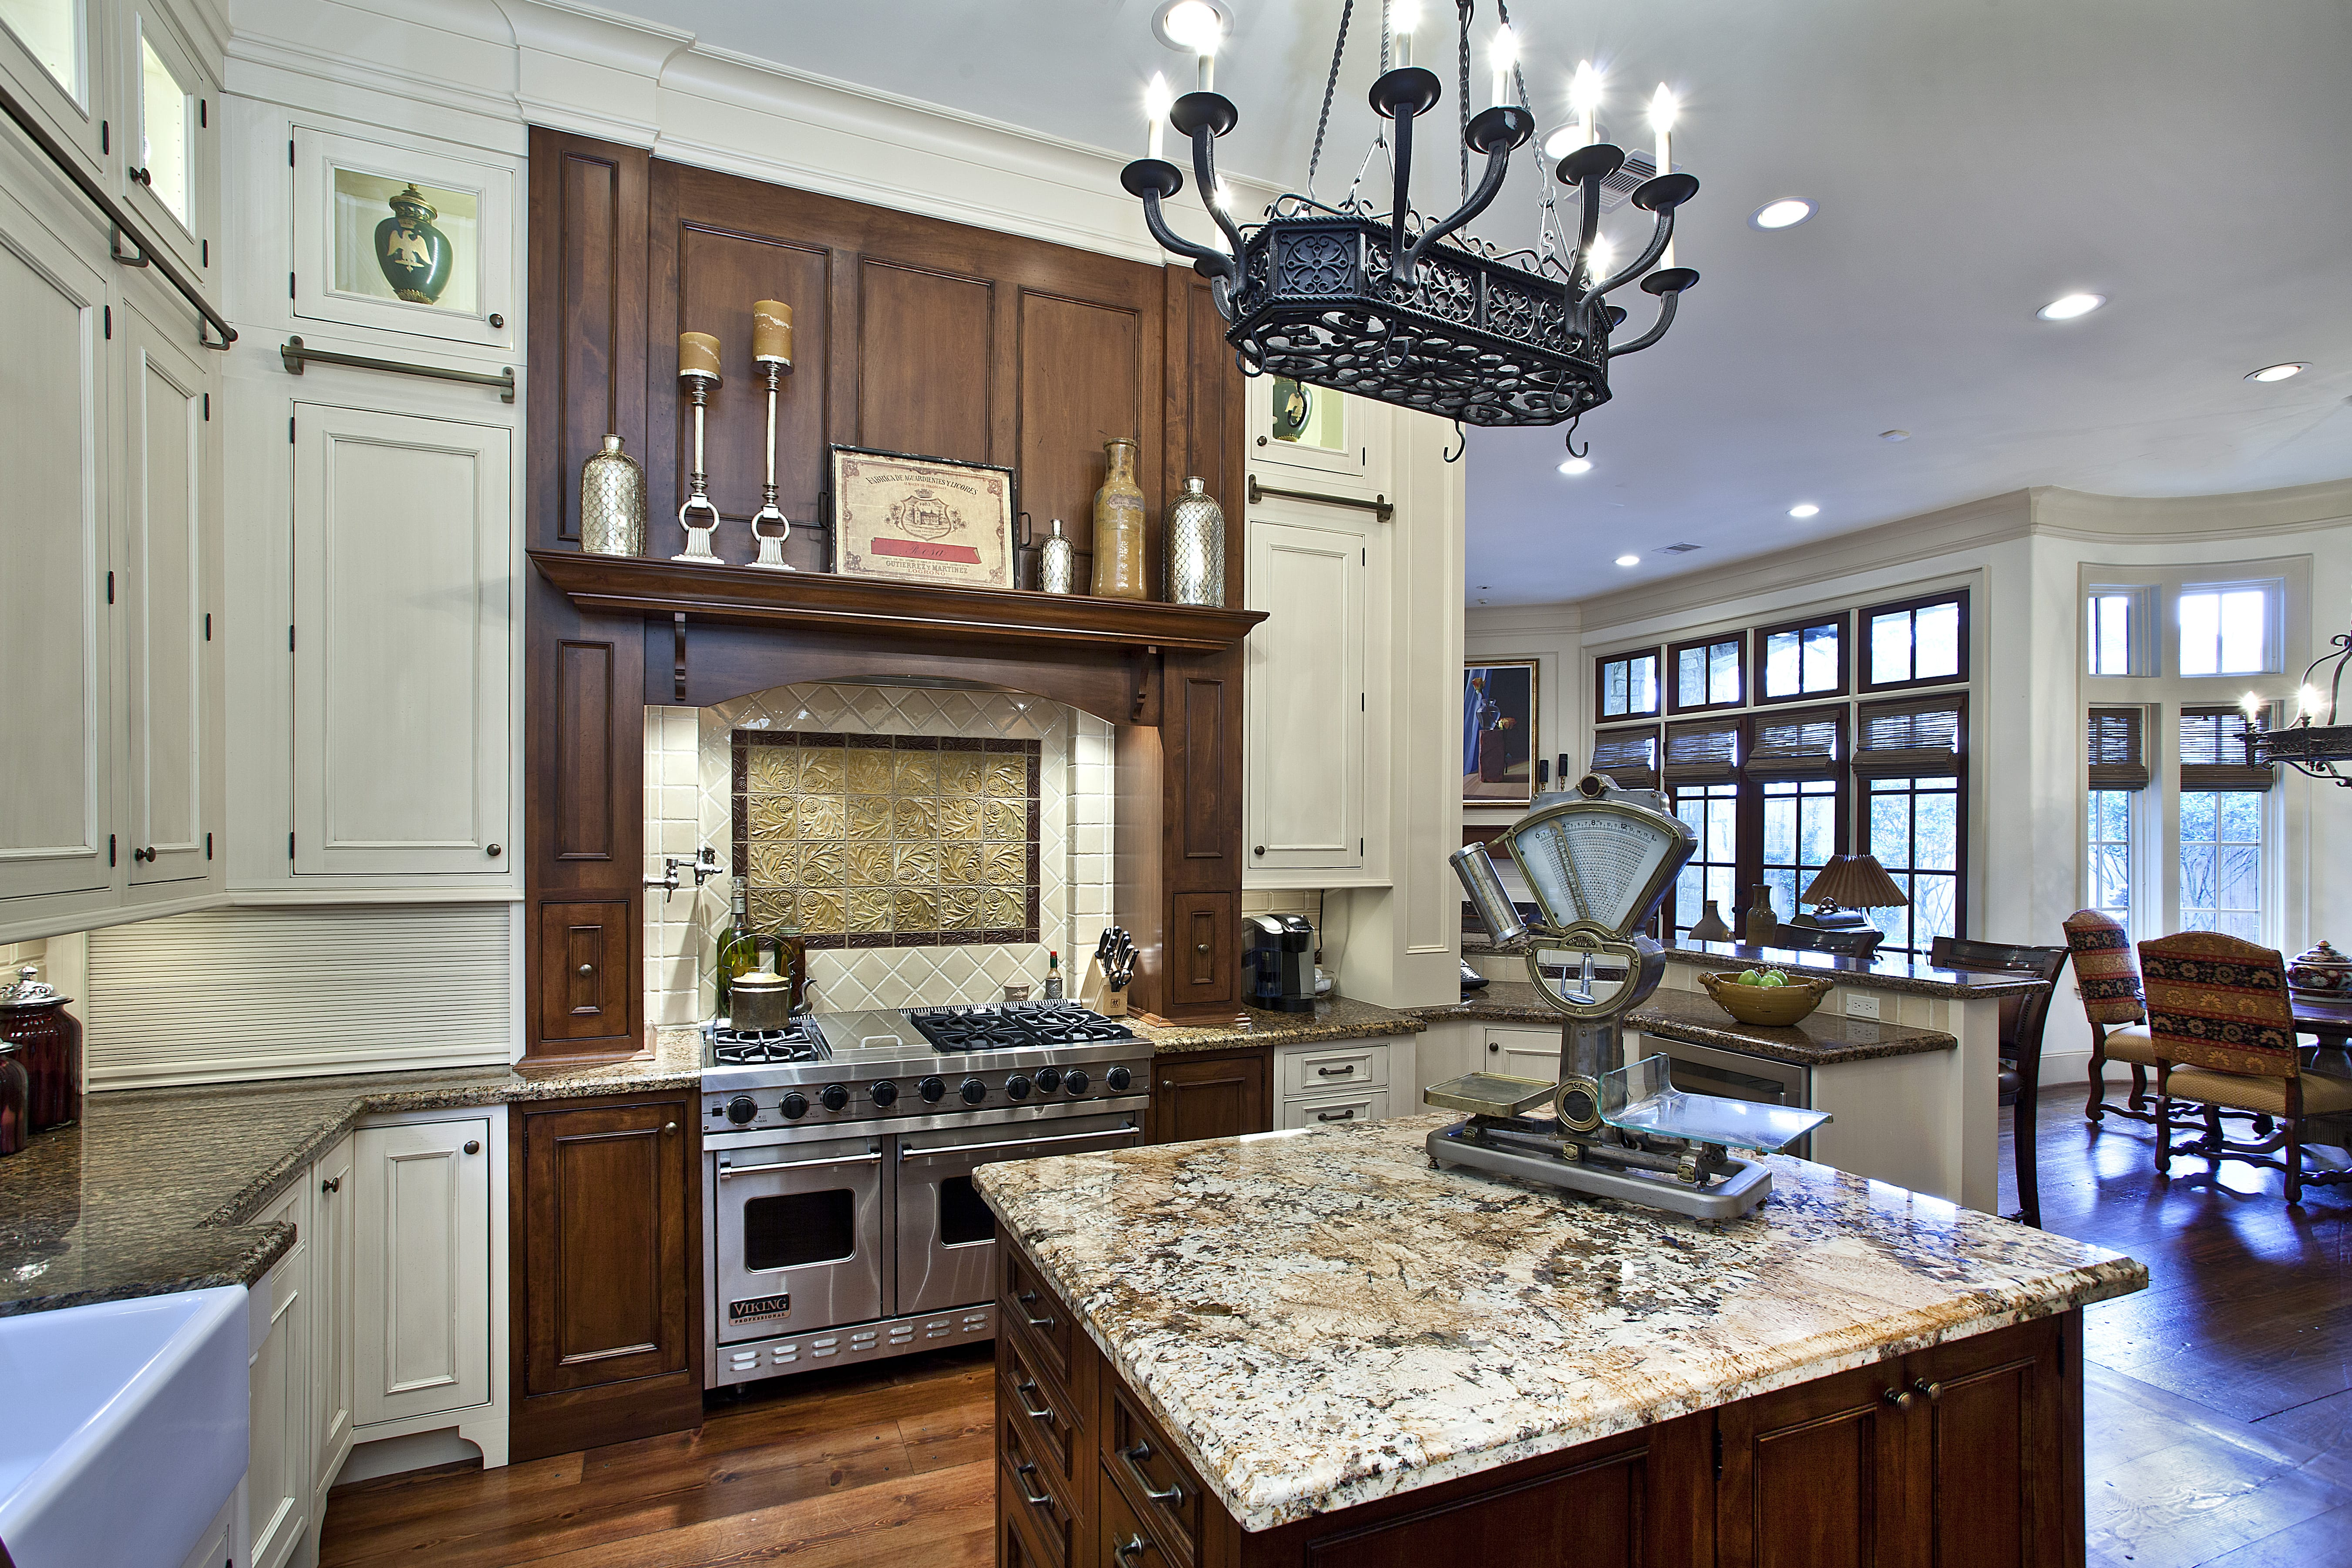 Kitchen Cabinets Gallery of Images and Ideas -- Cabinet ...